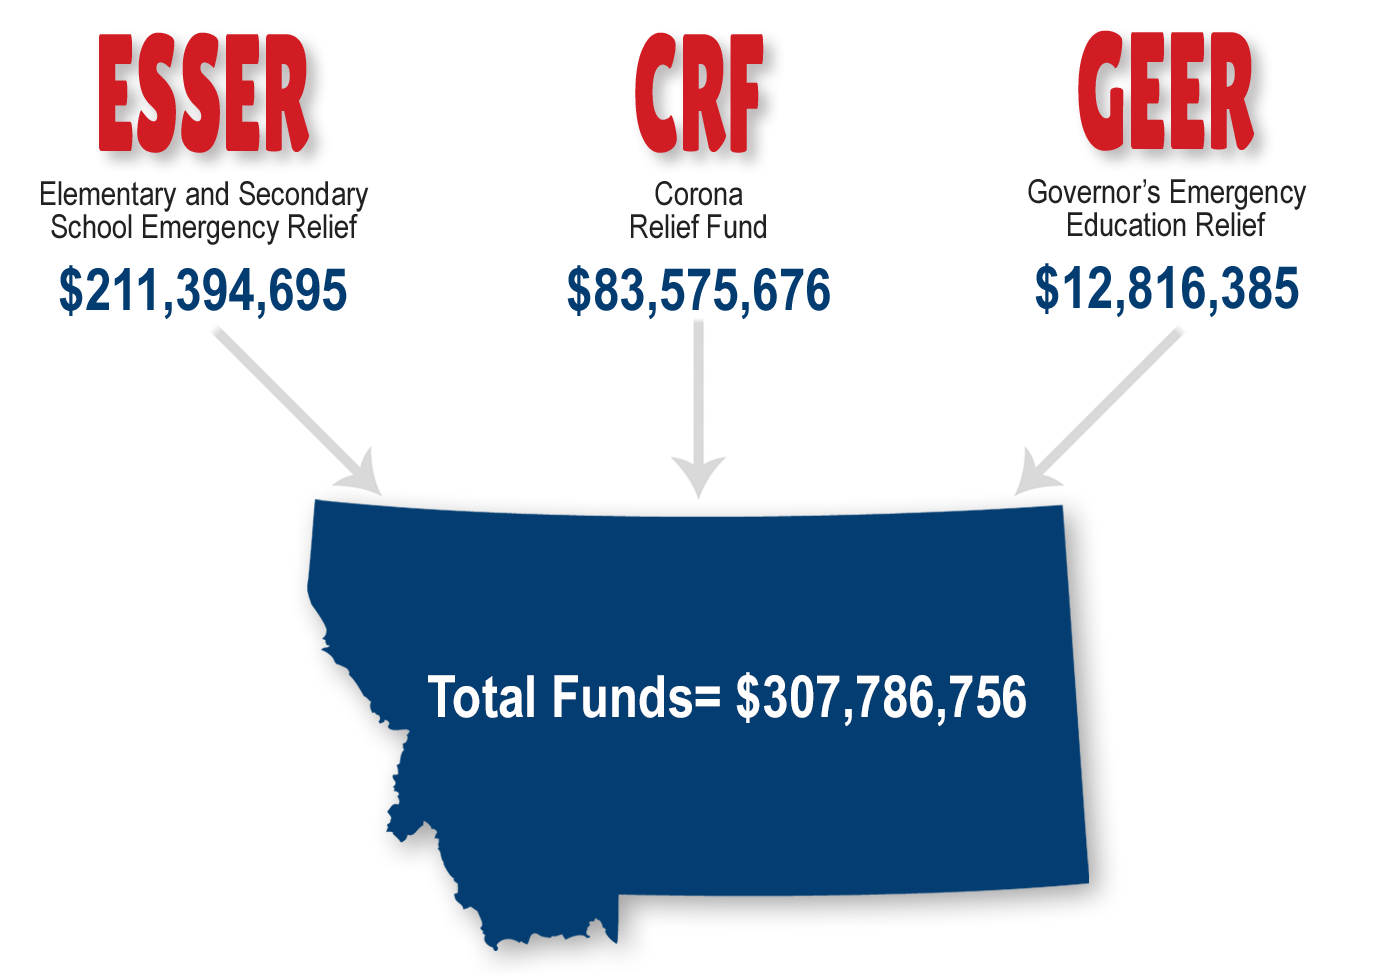 Elementary and Secondary School Emergency Relief (ESSER) = $211,394,695; Corona Relief Fund (CRF) = $83,575,676; Governor's Emergency Education Relief (GEER) = $12,816,385; Montana Total Funds = $307,786,756